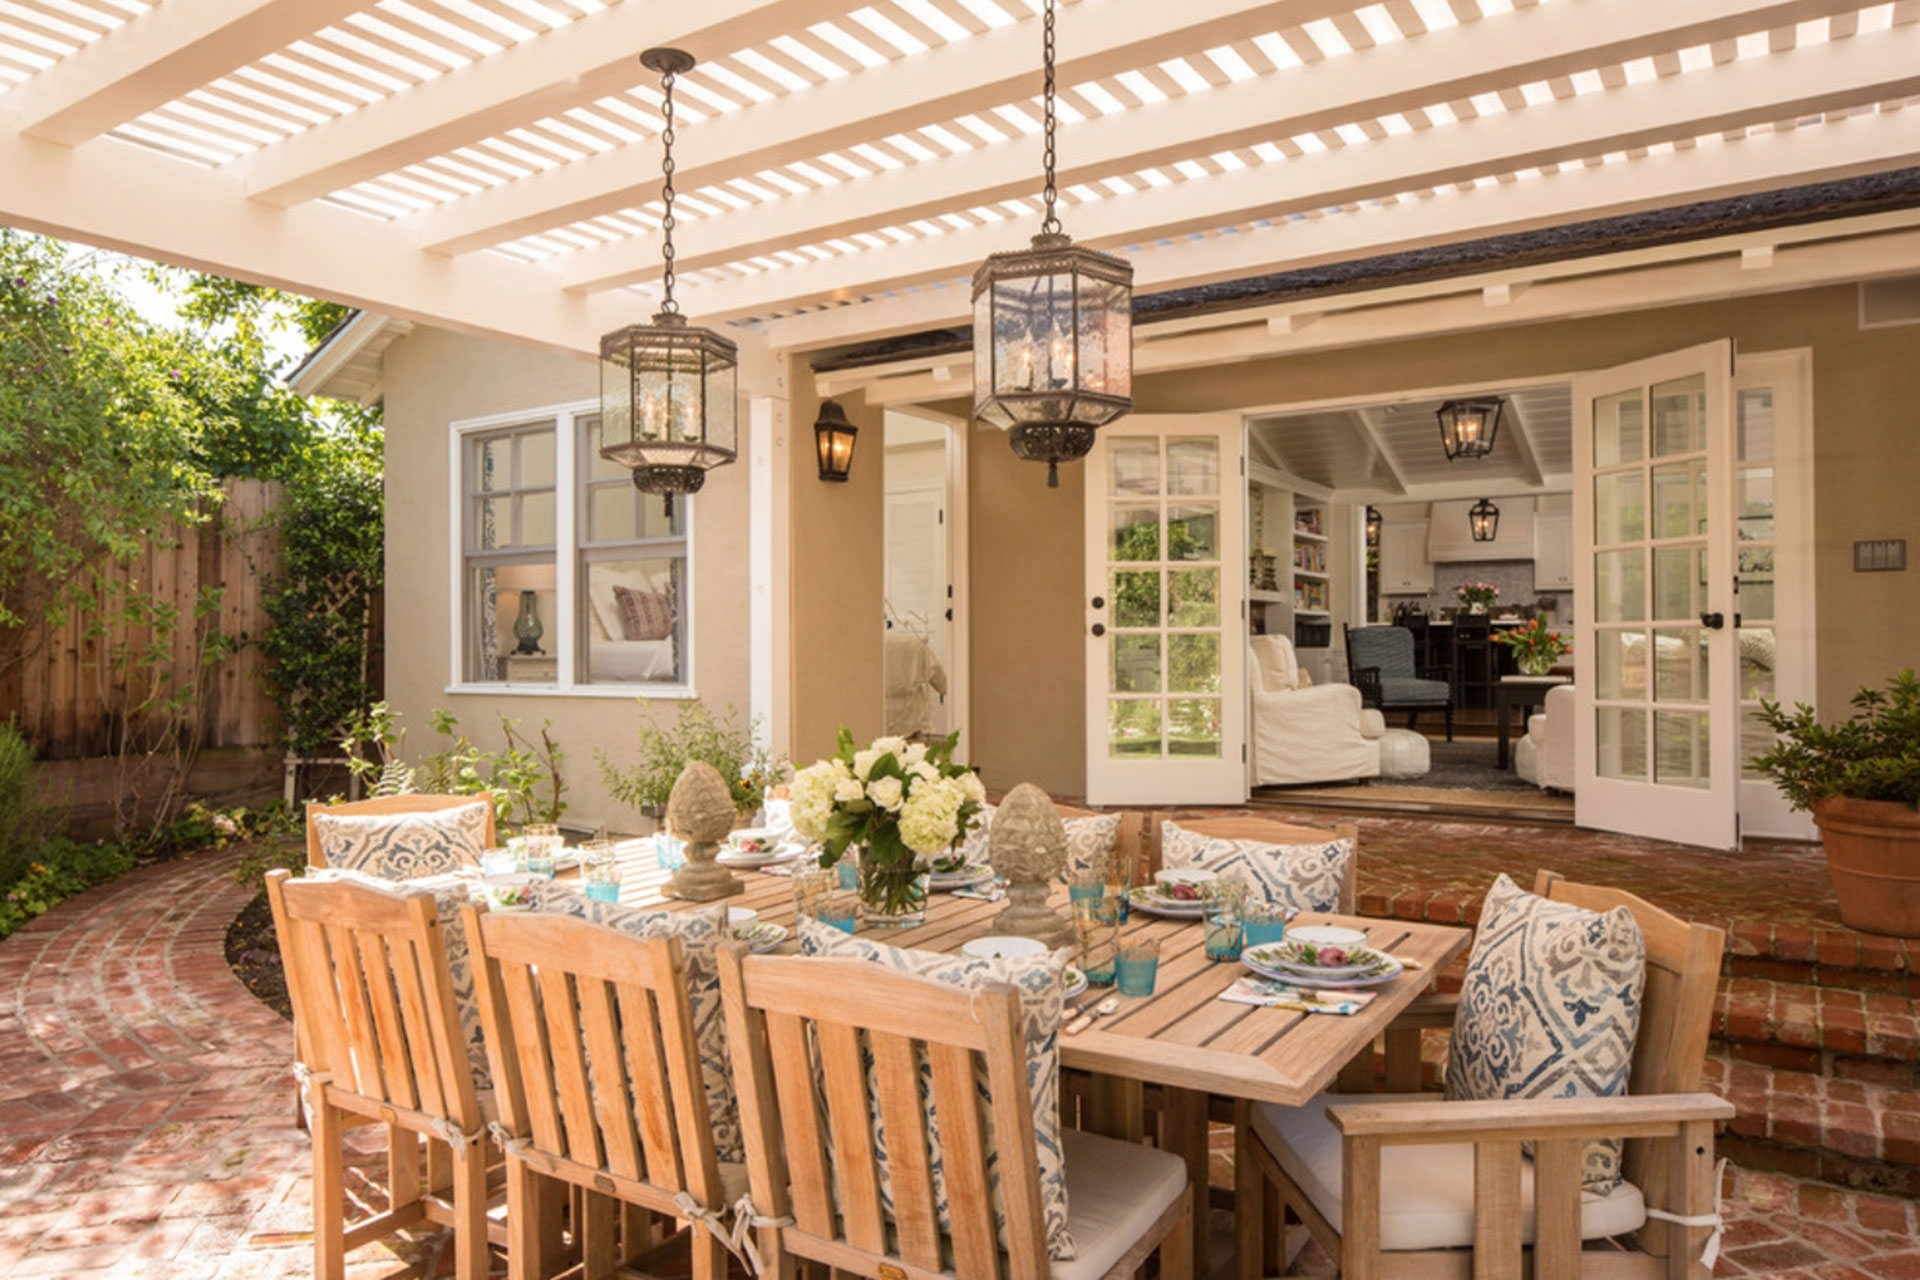 33 Neat Design Outdoor Lantern Lighting Ideas Five Pergola To Pertaining To Outdoor Dining Lanterns (Photo 16 of 20)